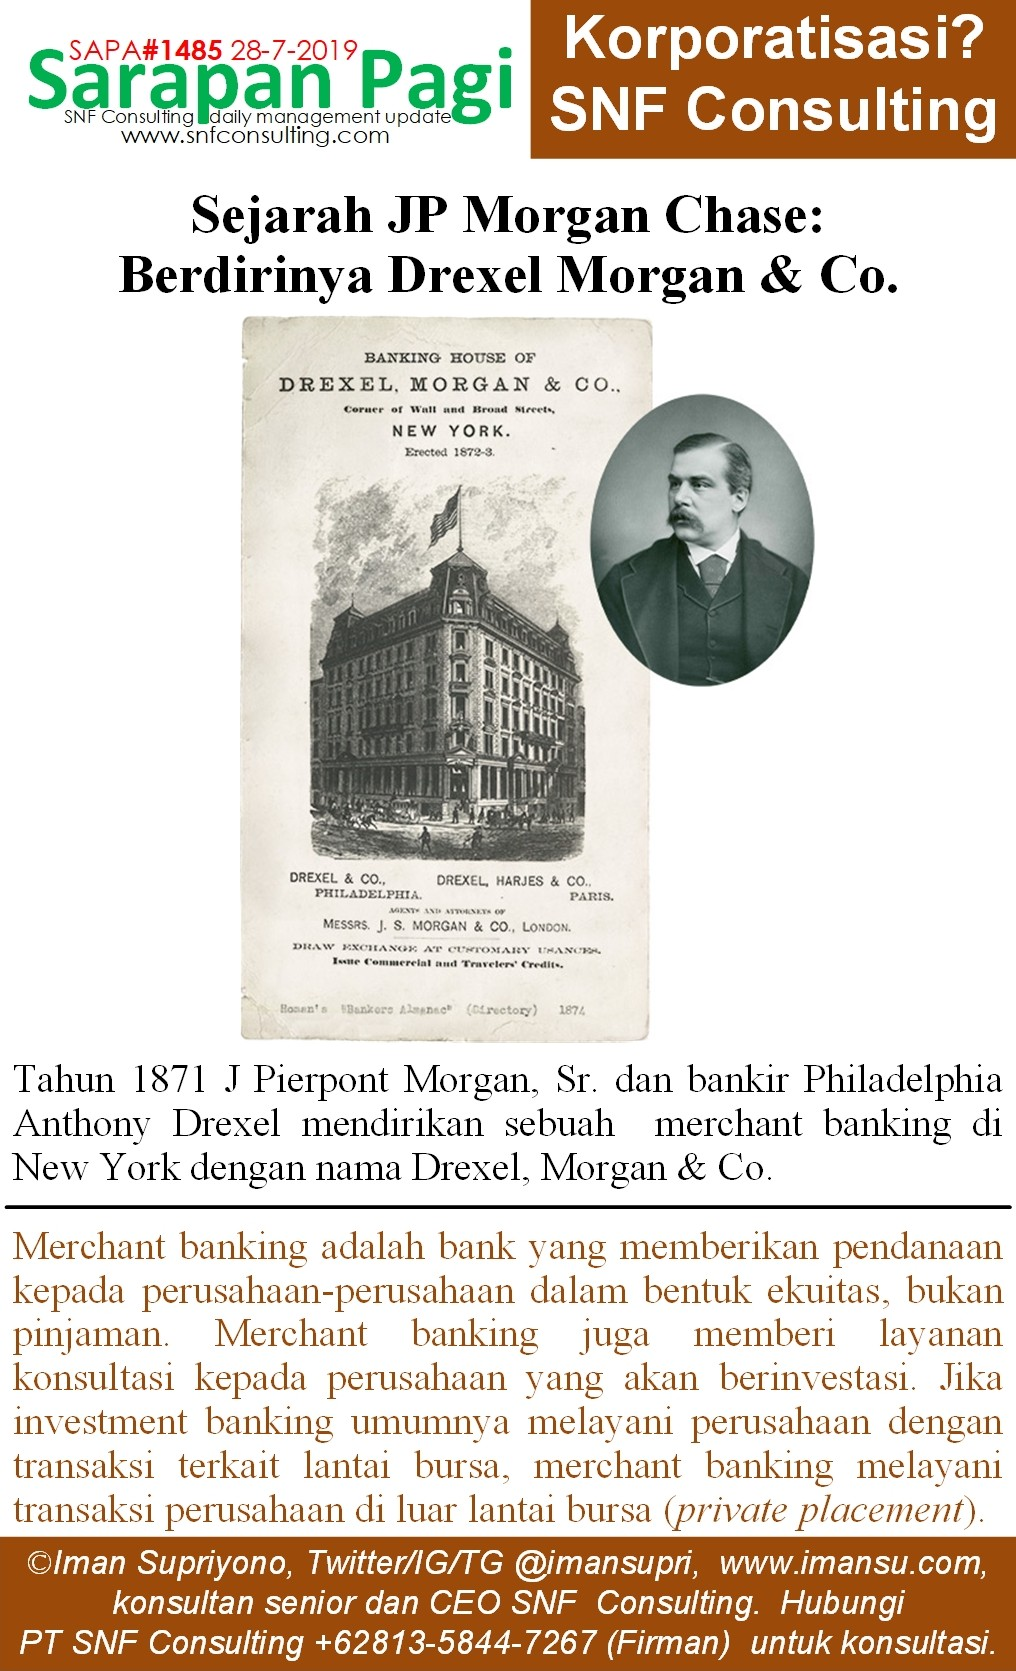 SAPA1485 Sejarah JP Morgan berdirinya morgan drexel and co~2